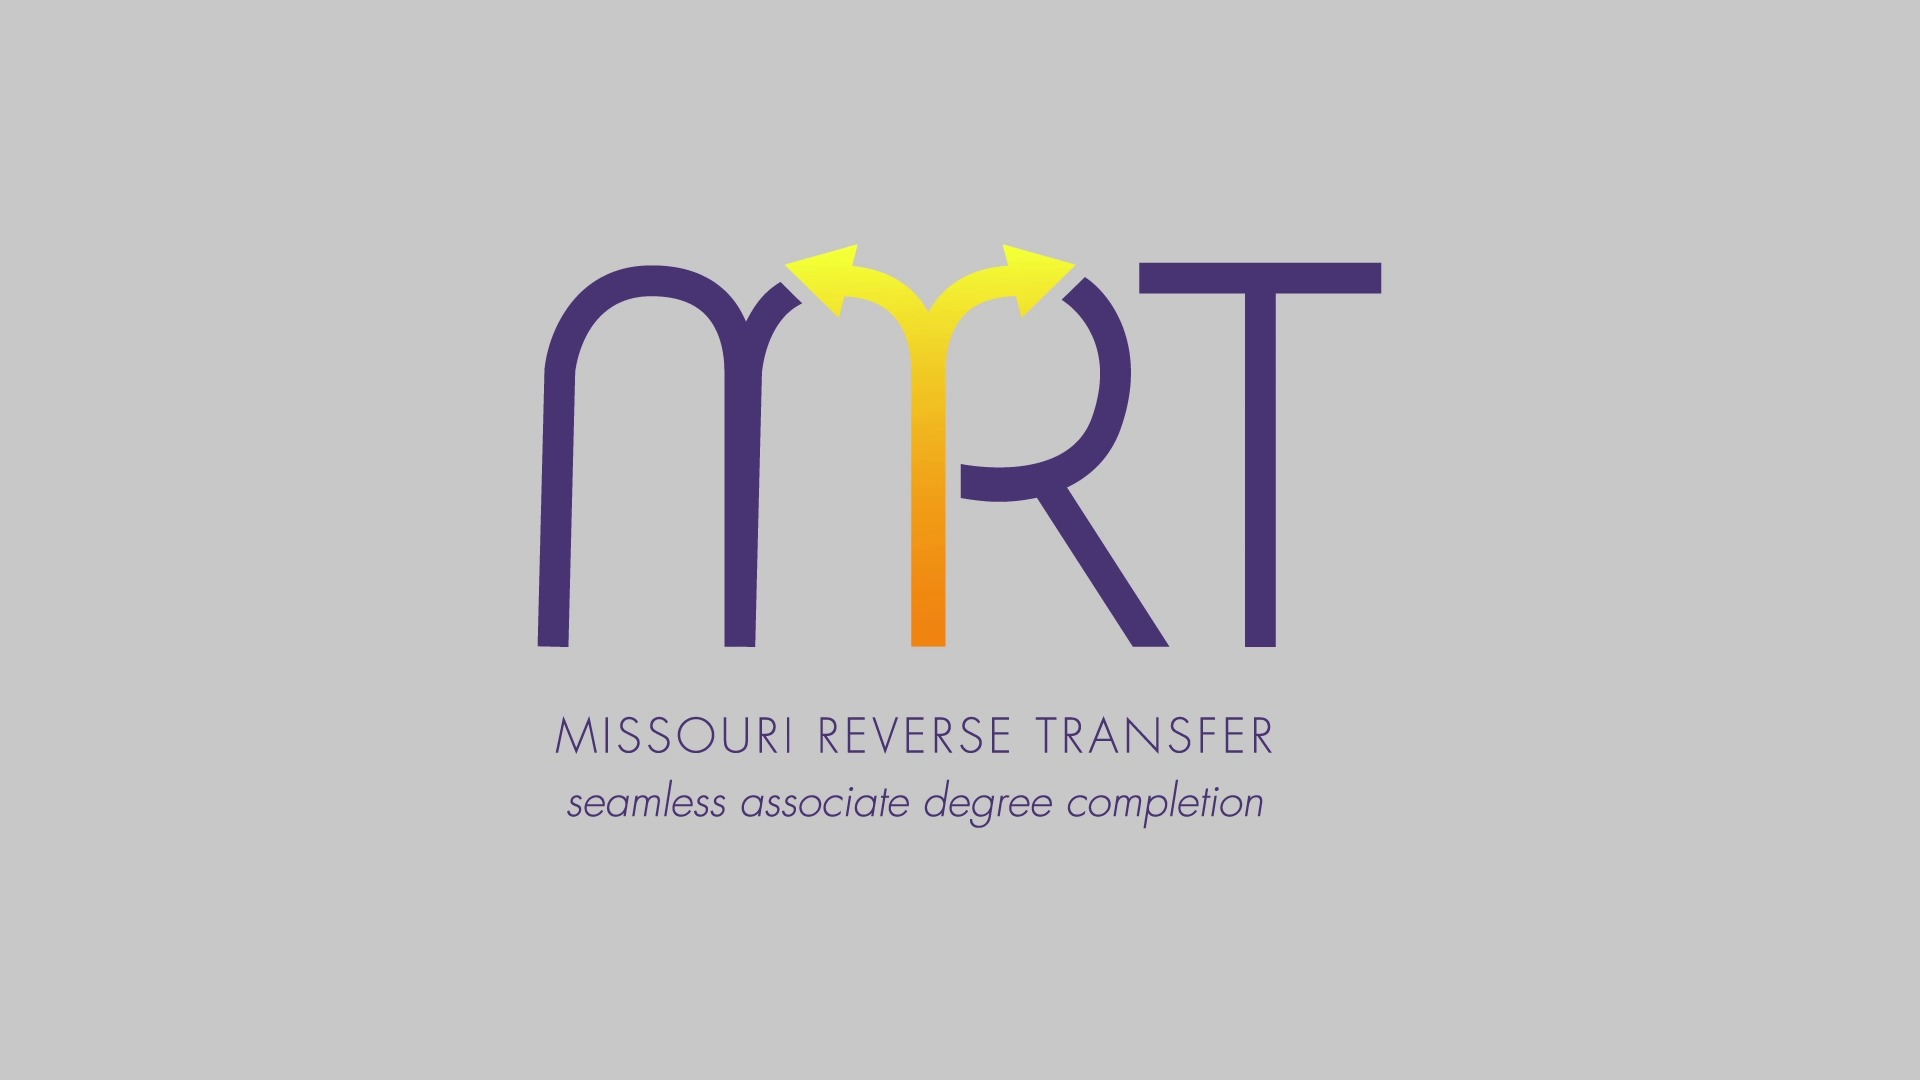 A thumbnail for the Missouri Reverse Transfer animation